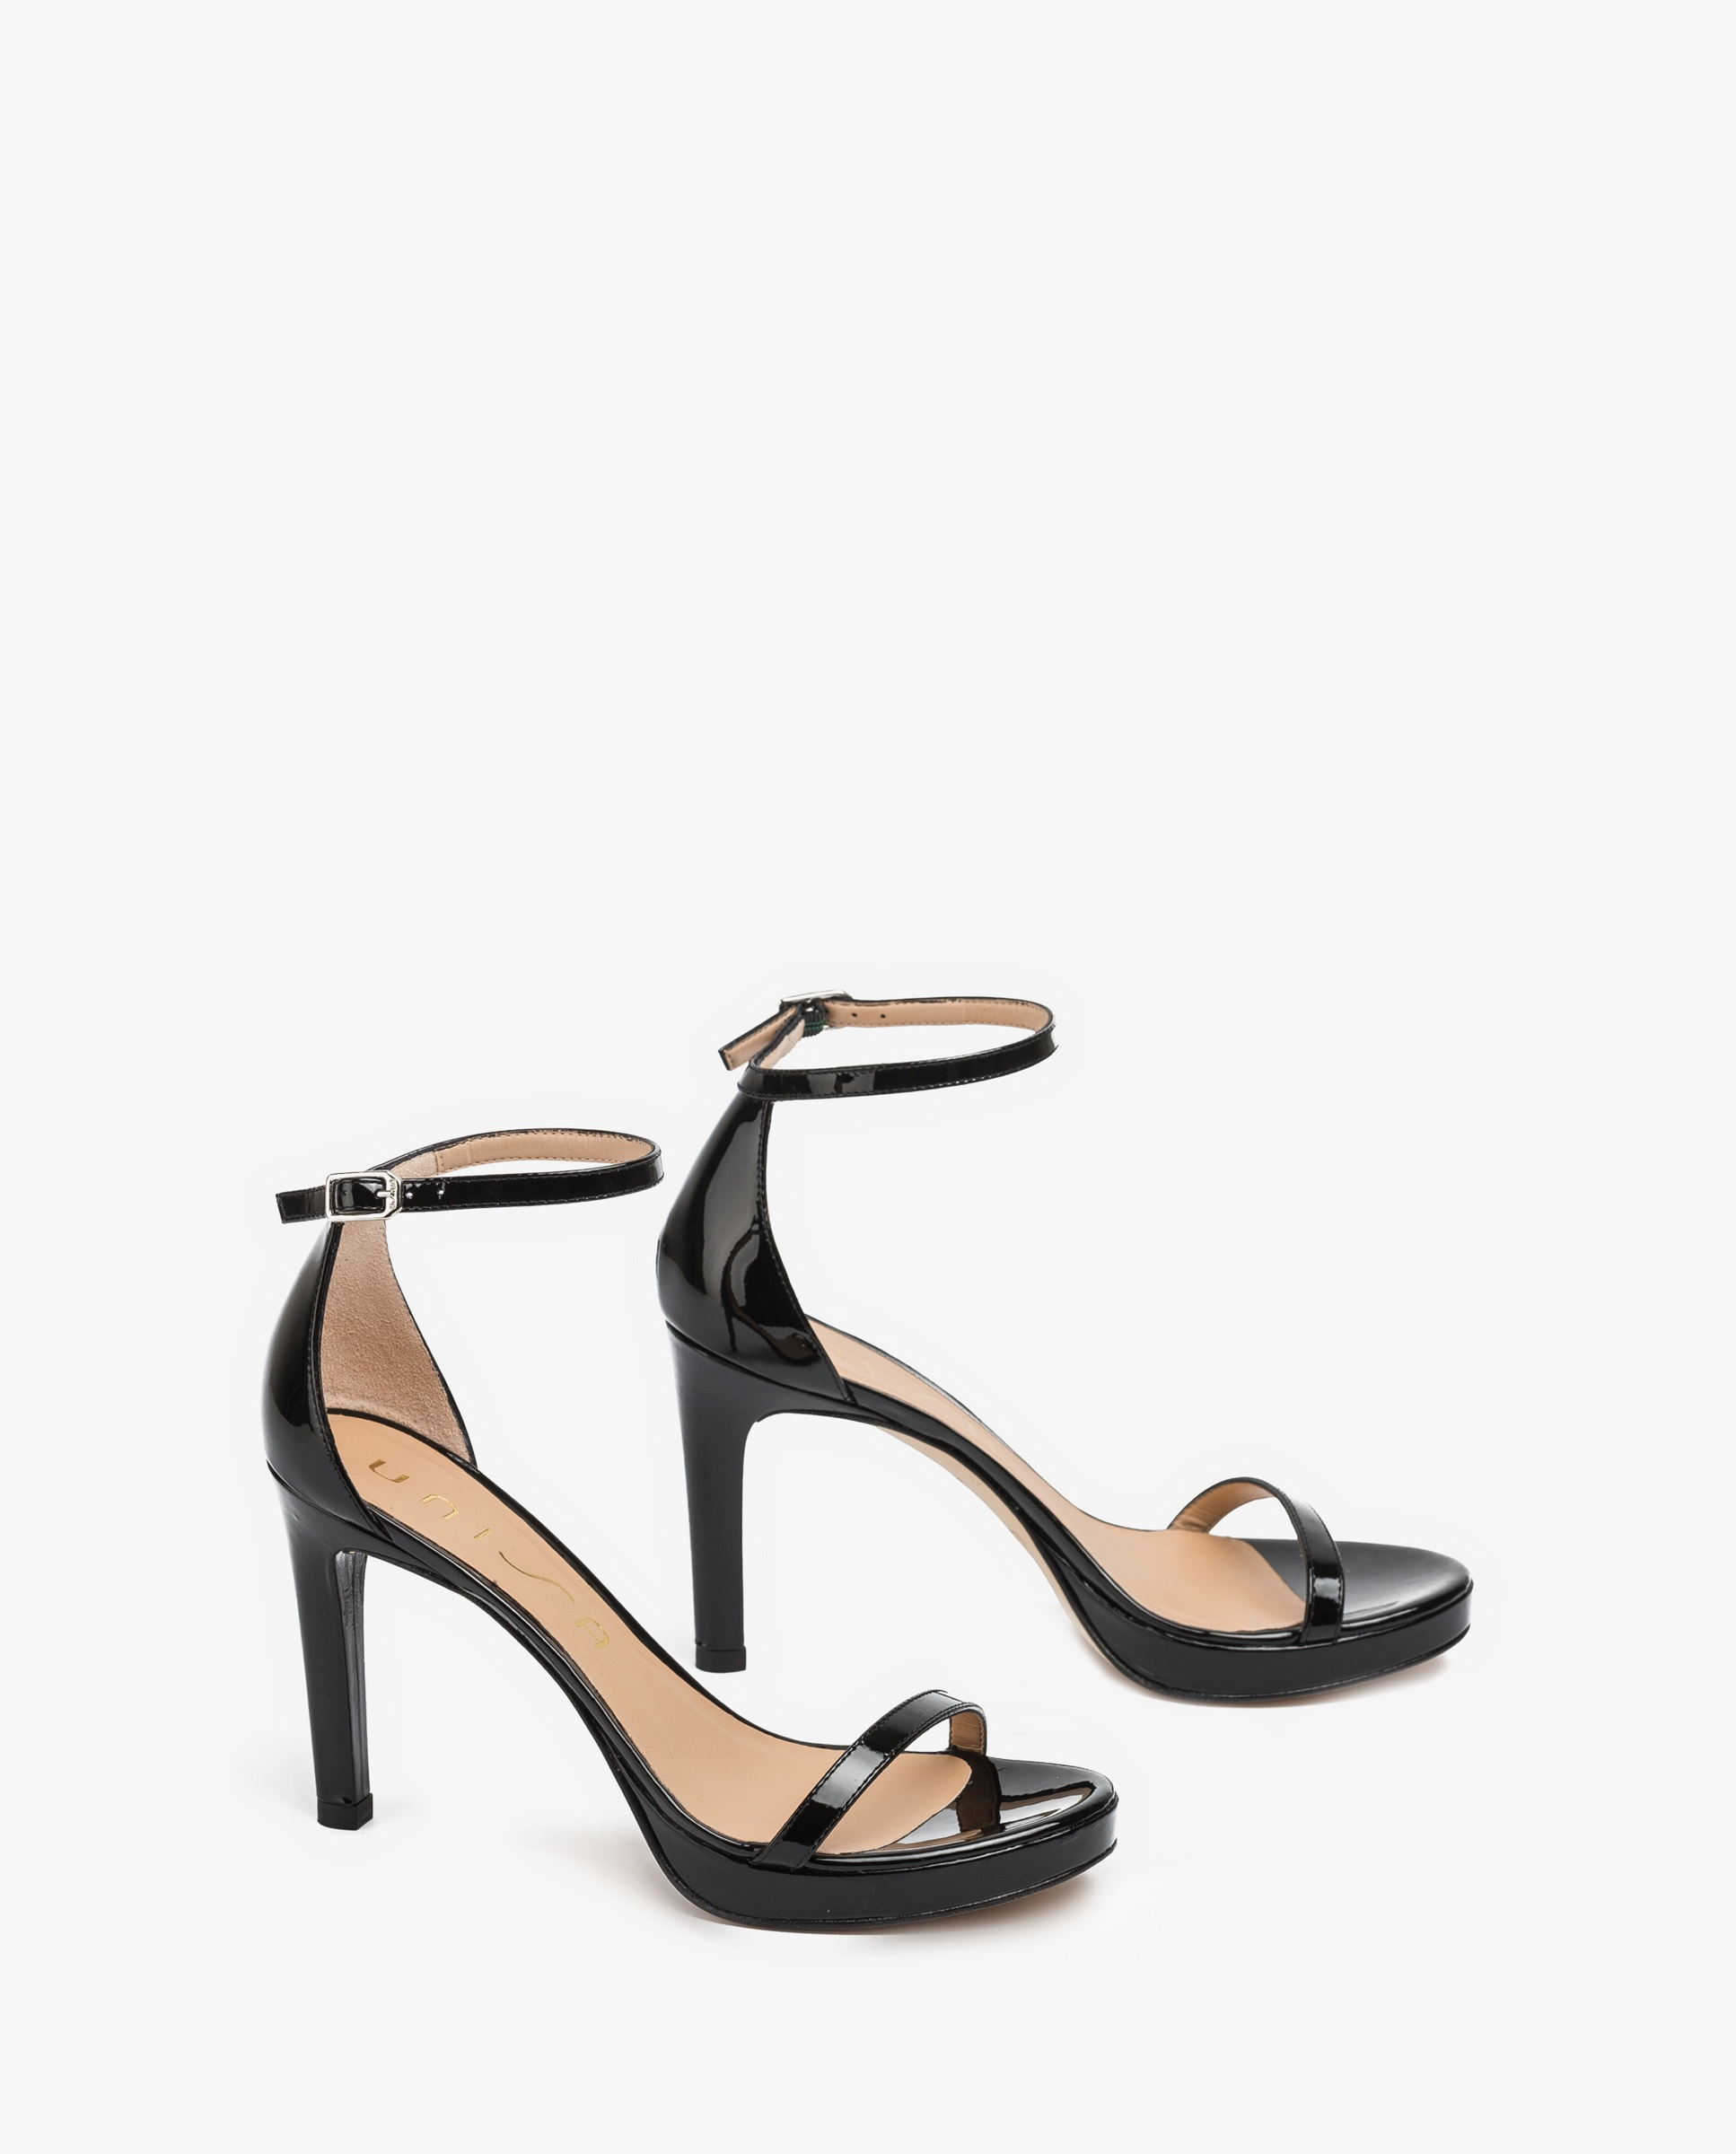 UNISA Patent leather sandals ankle strap VERONIC_PA black 2